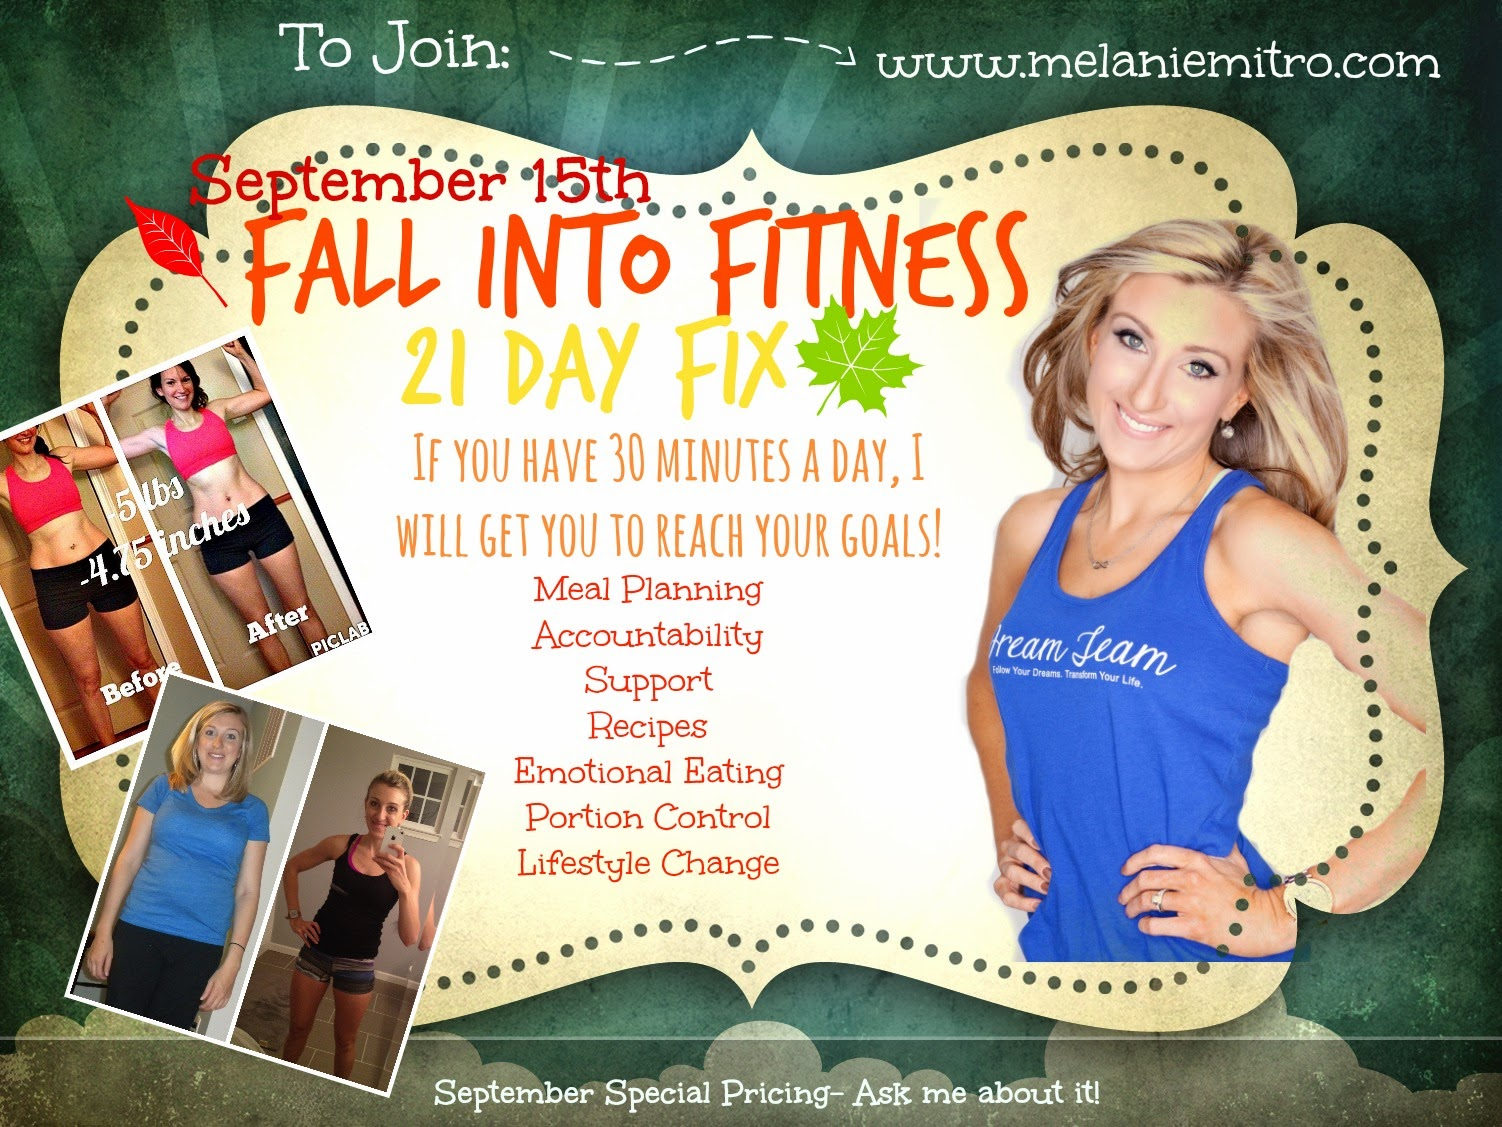 The 21 Day Fix is on sale, September, 21 Day Fix, Support Group, Accountability, Melanie Mitro